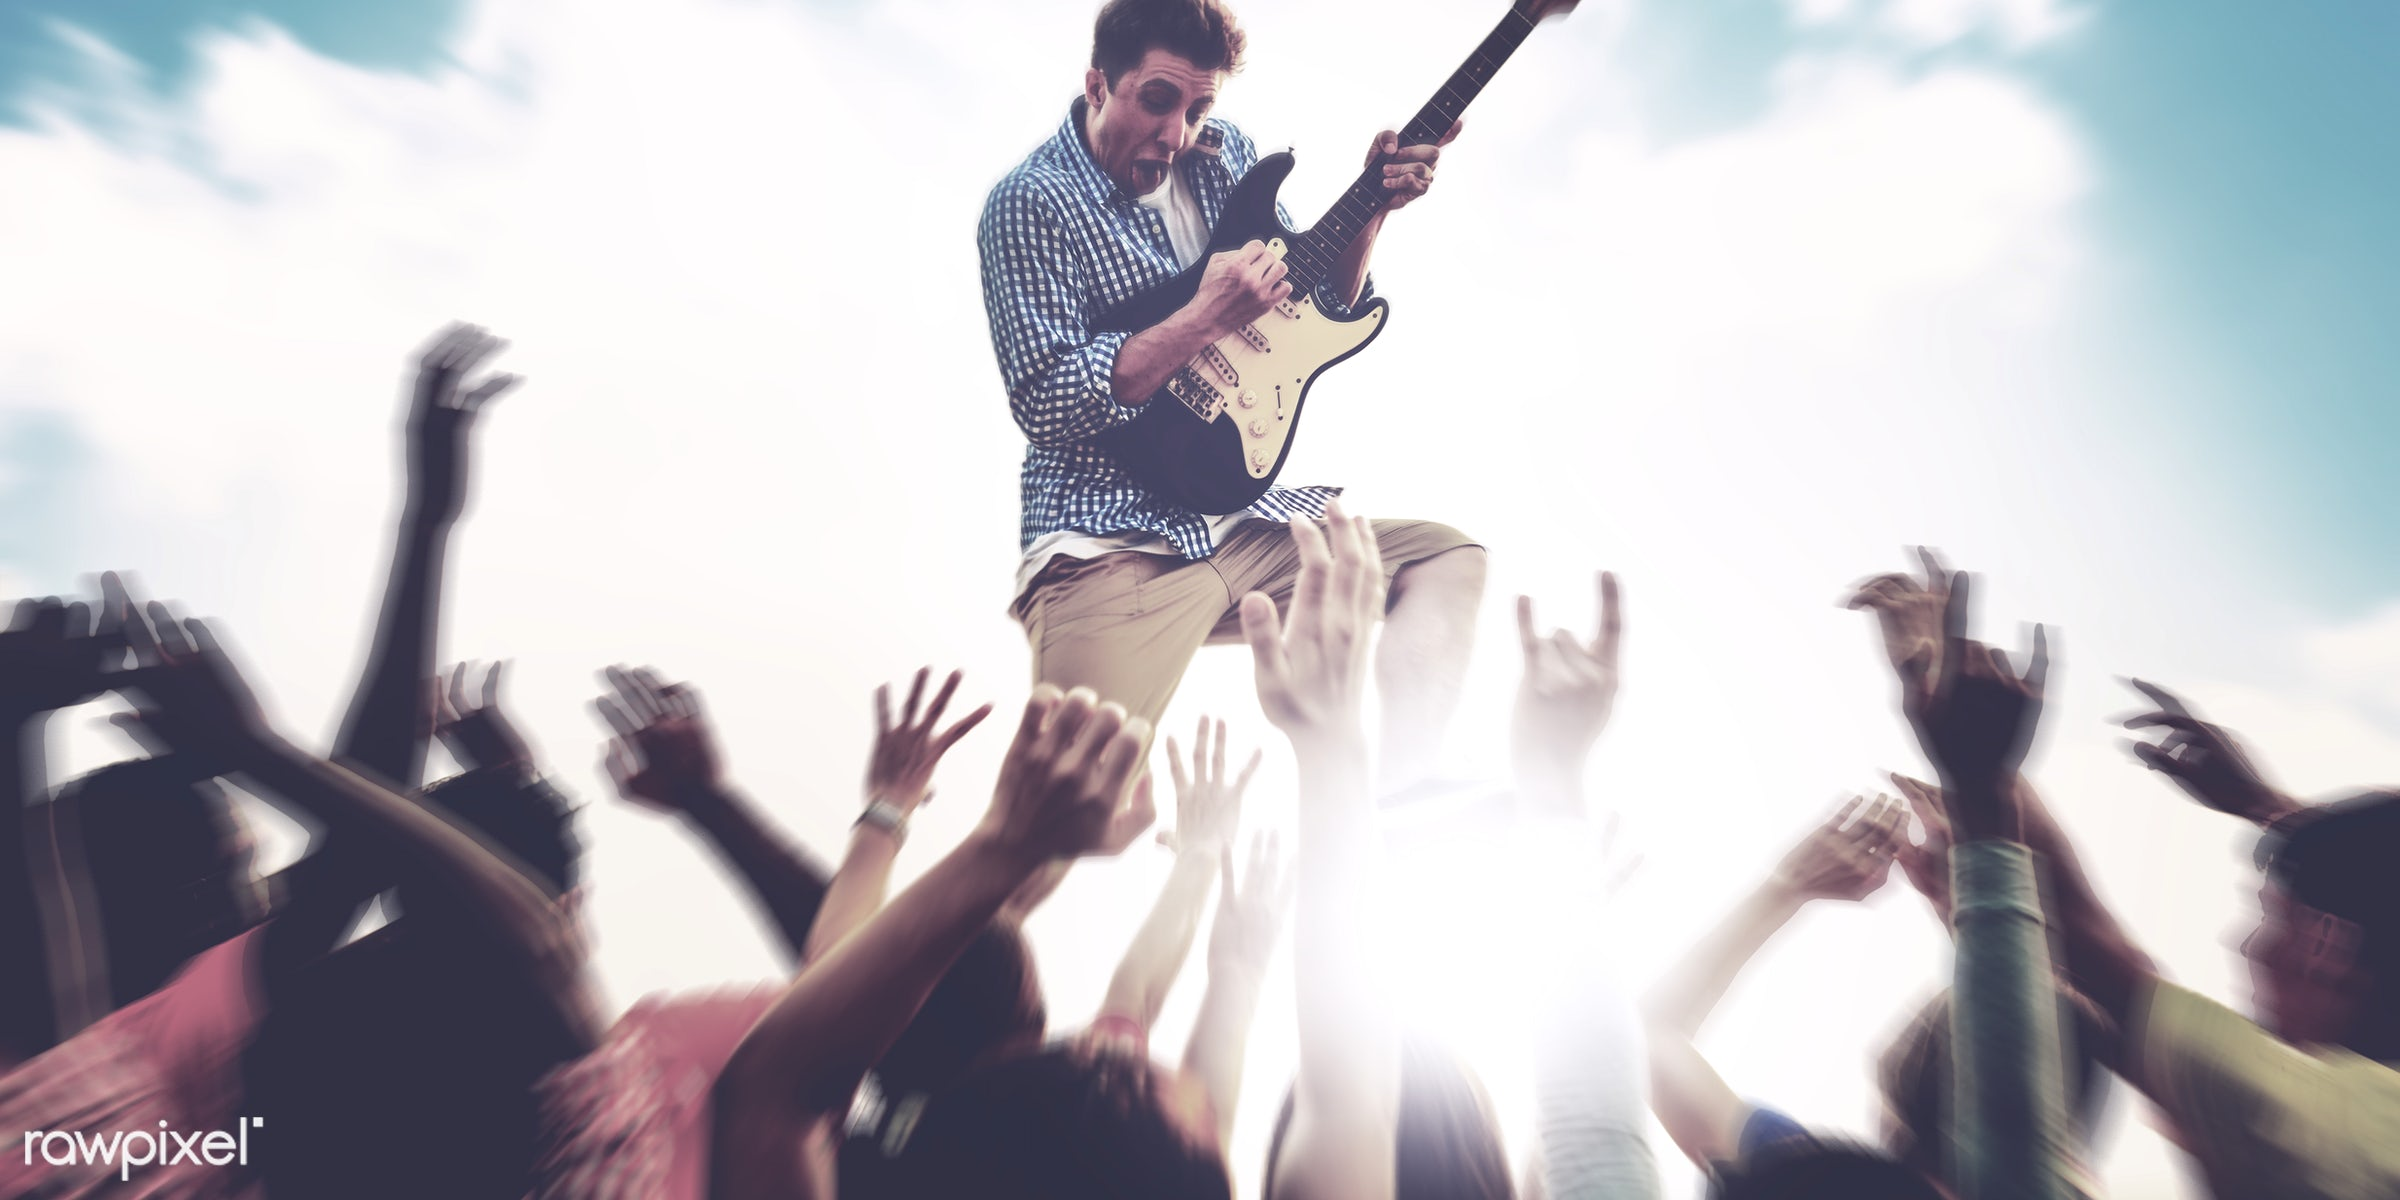 Guitarist playing at a music festival - concert, beach party, guitar, adolescence, audience, beach, carefree, celebration,...